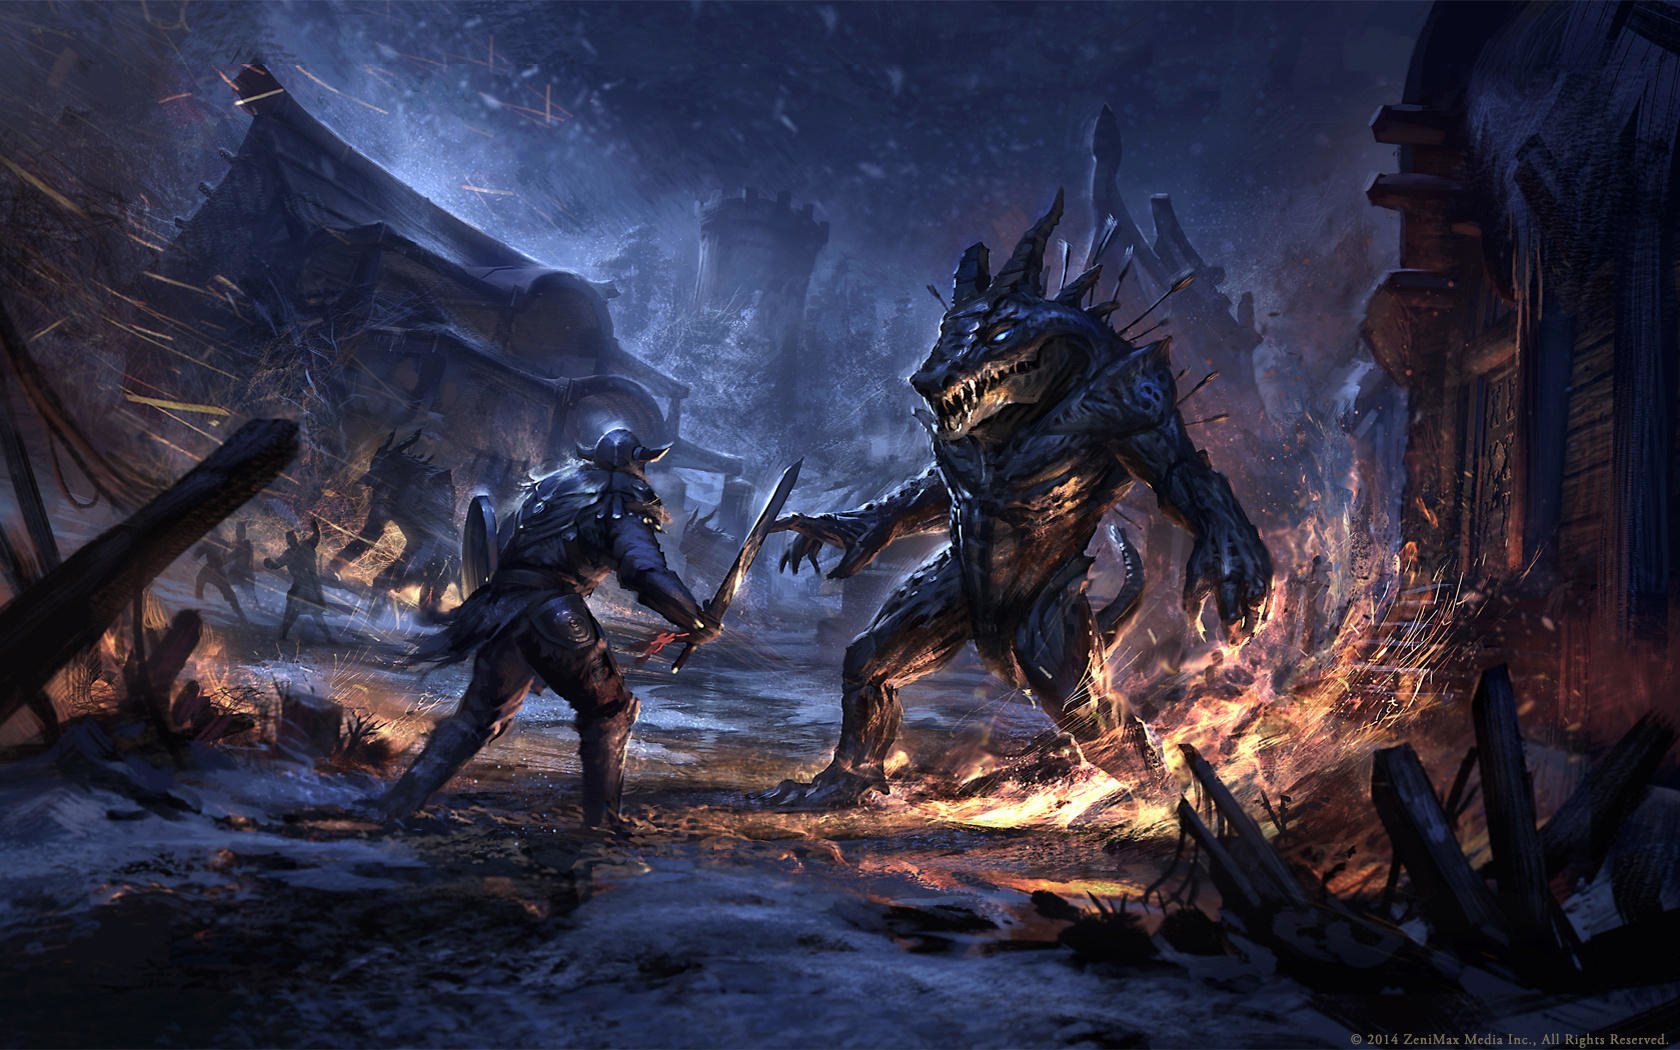 175 The Elder Scrolls Online Hd Wallpapers Background Images